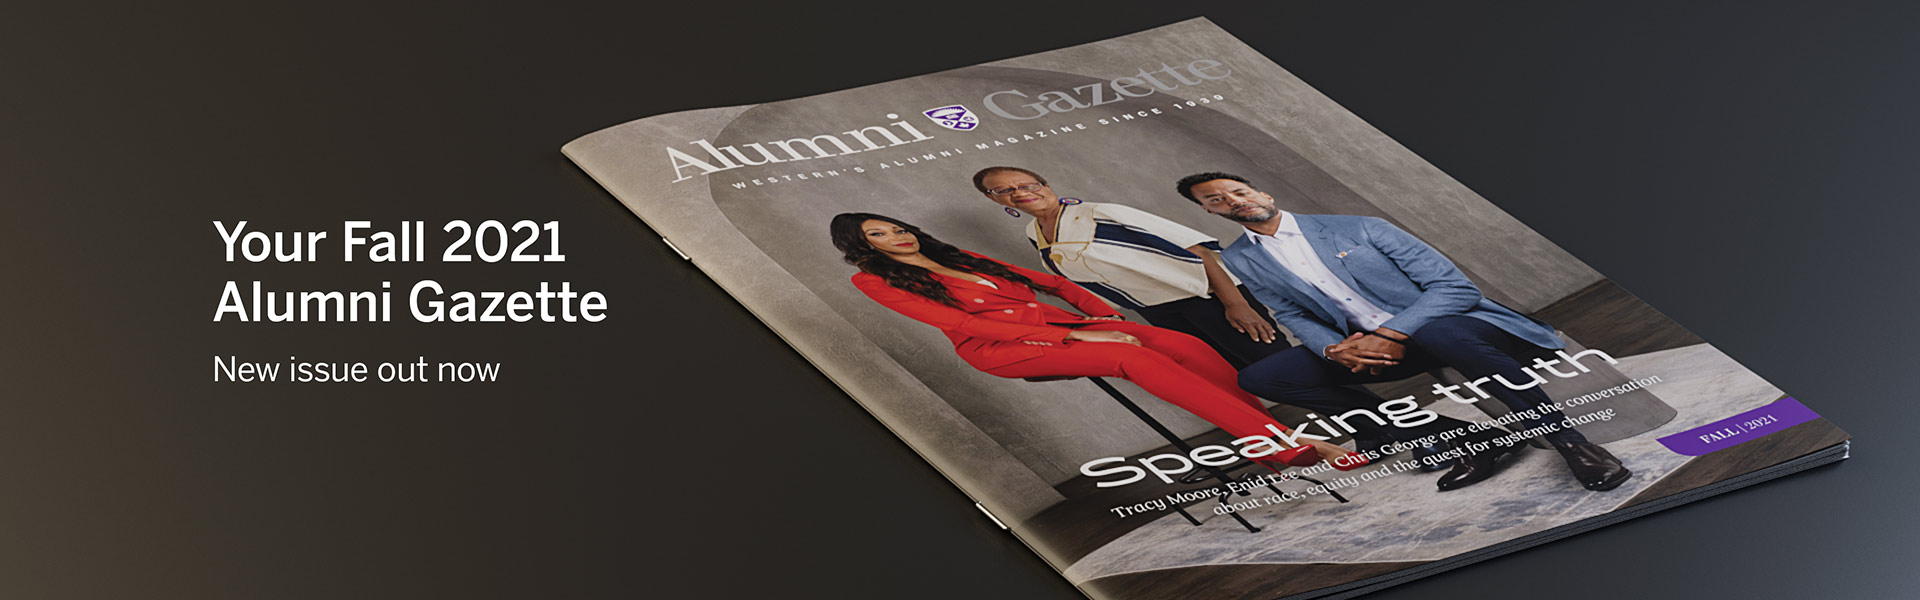 Your Fall 2021 Alumni Gazette: New Issue Out Now